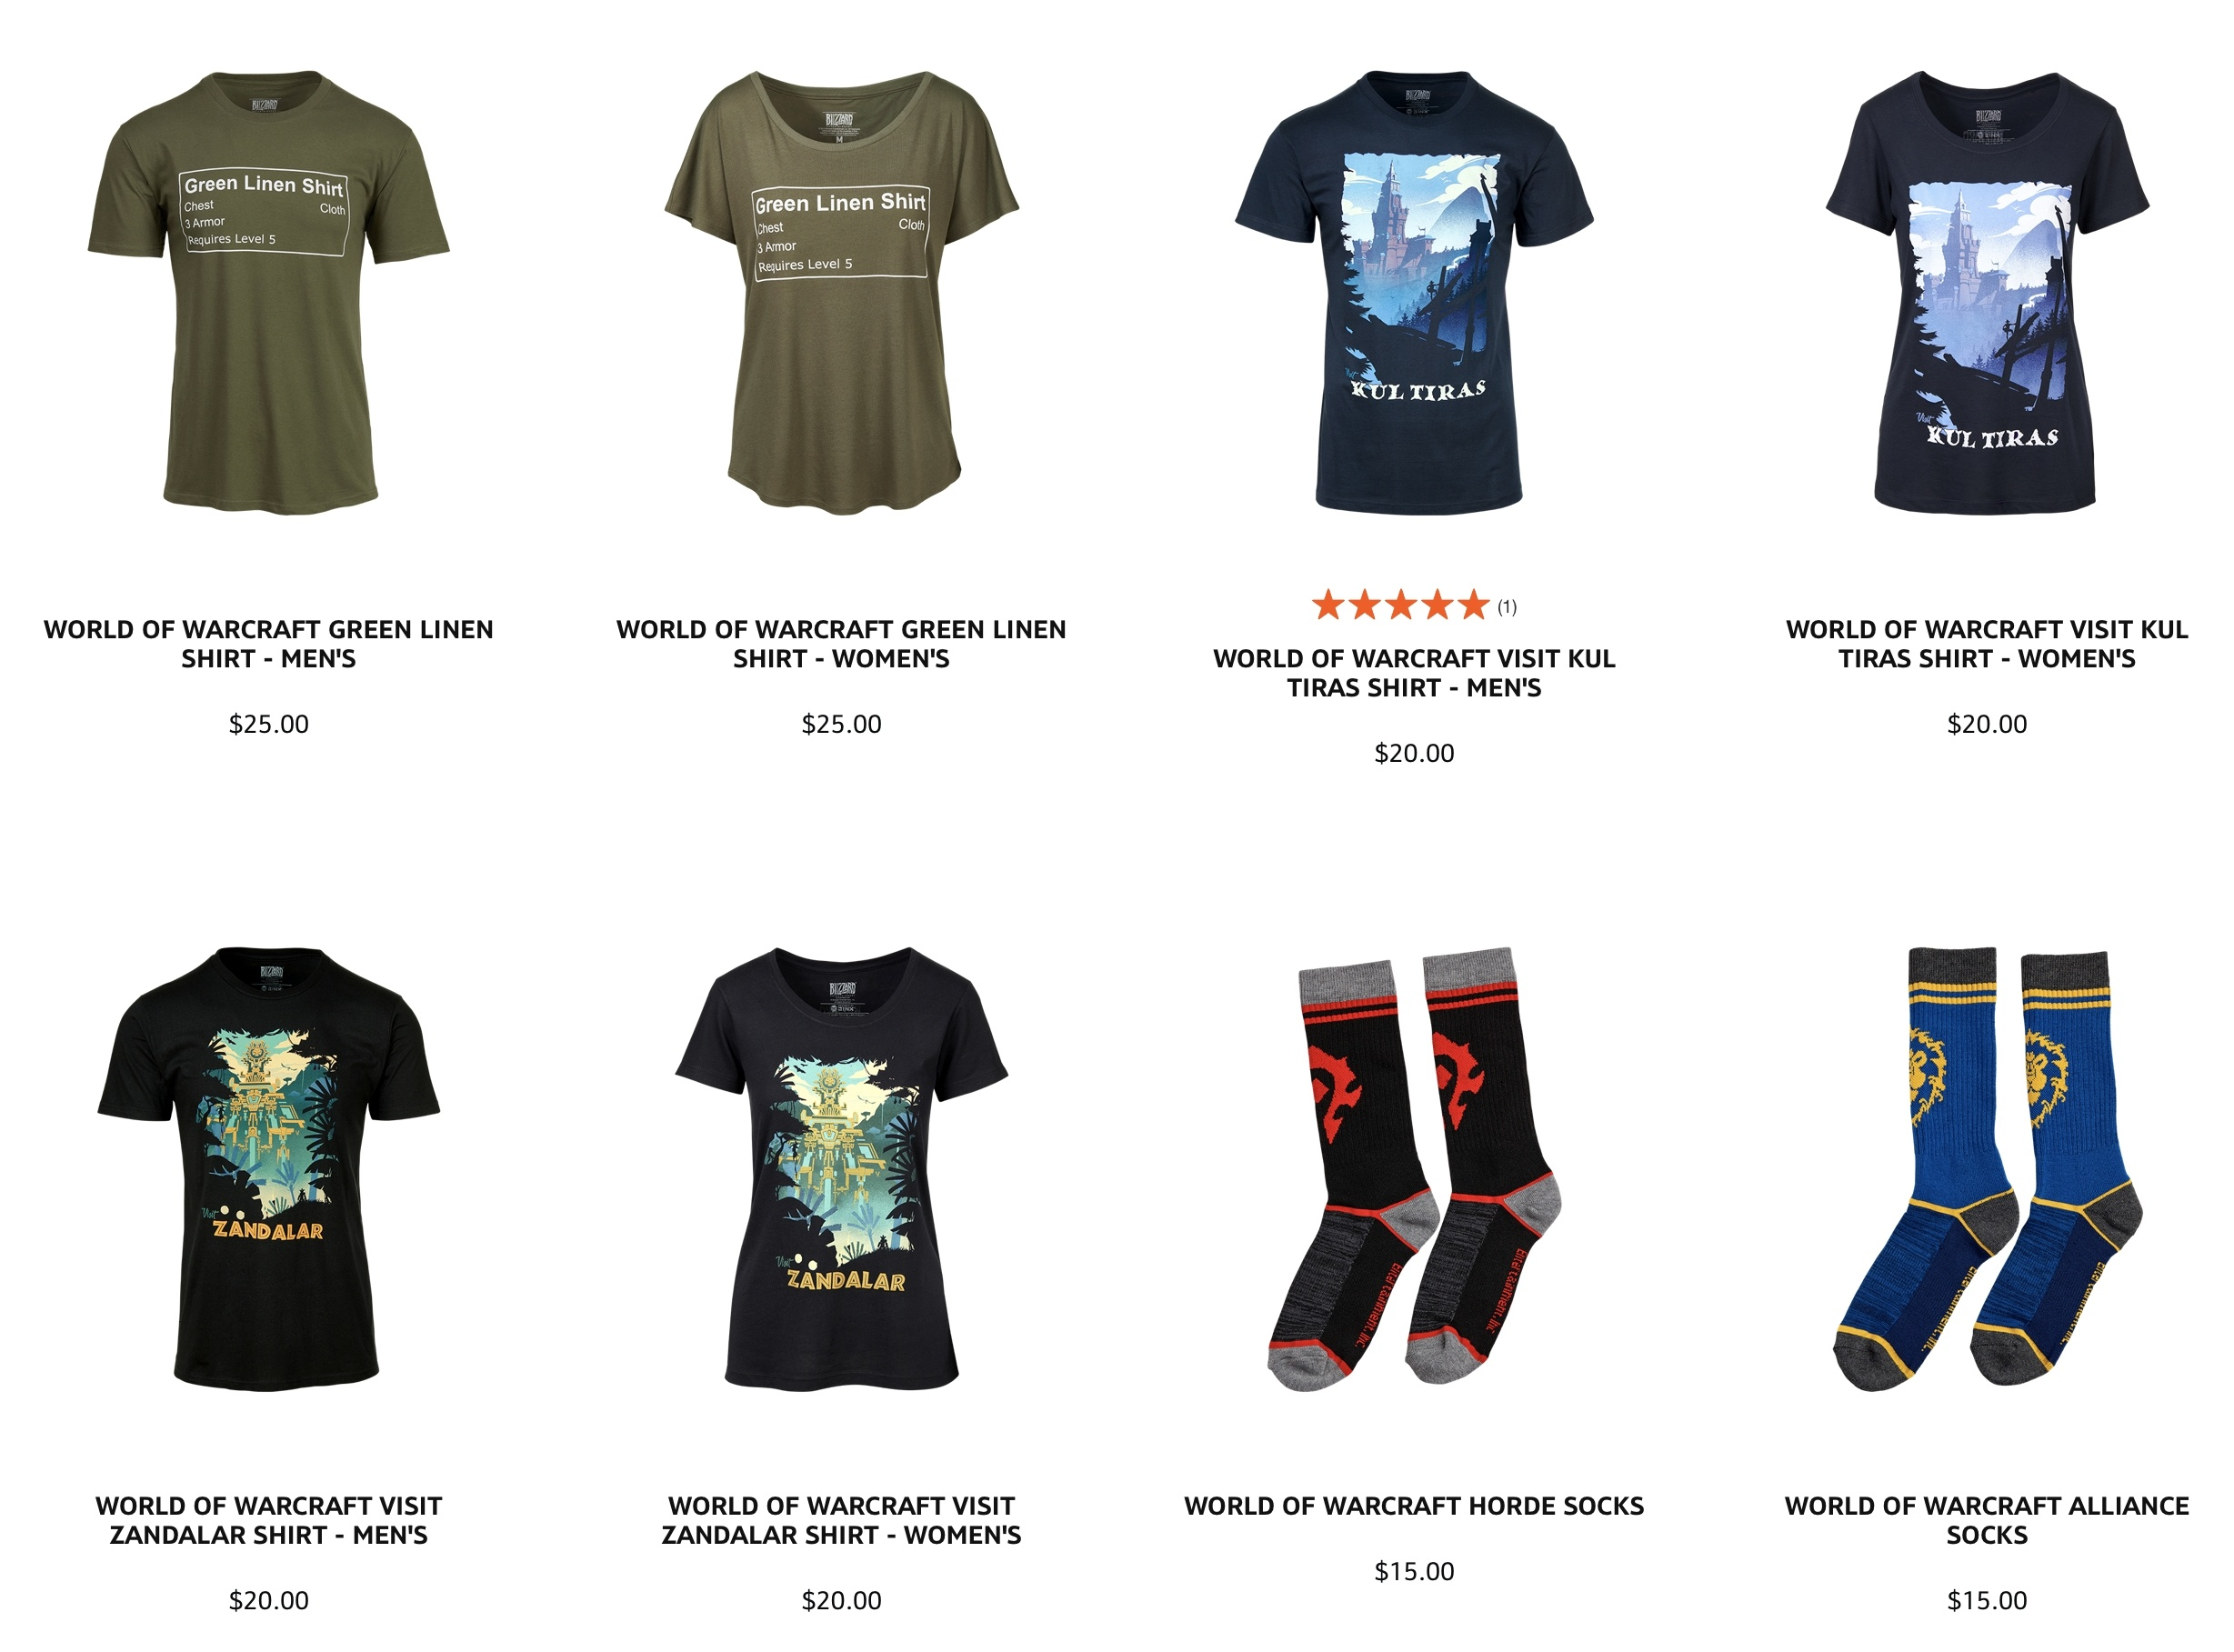 World of Warcraft 15th Anniversary Merchandise Collection on Gear